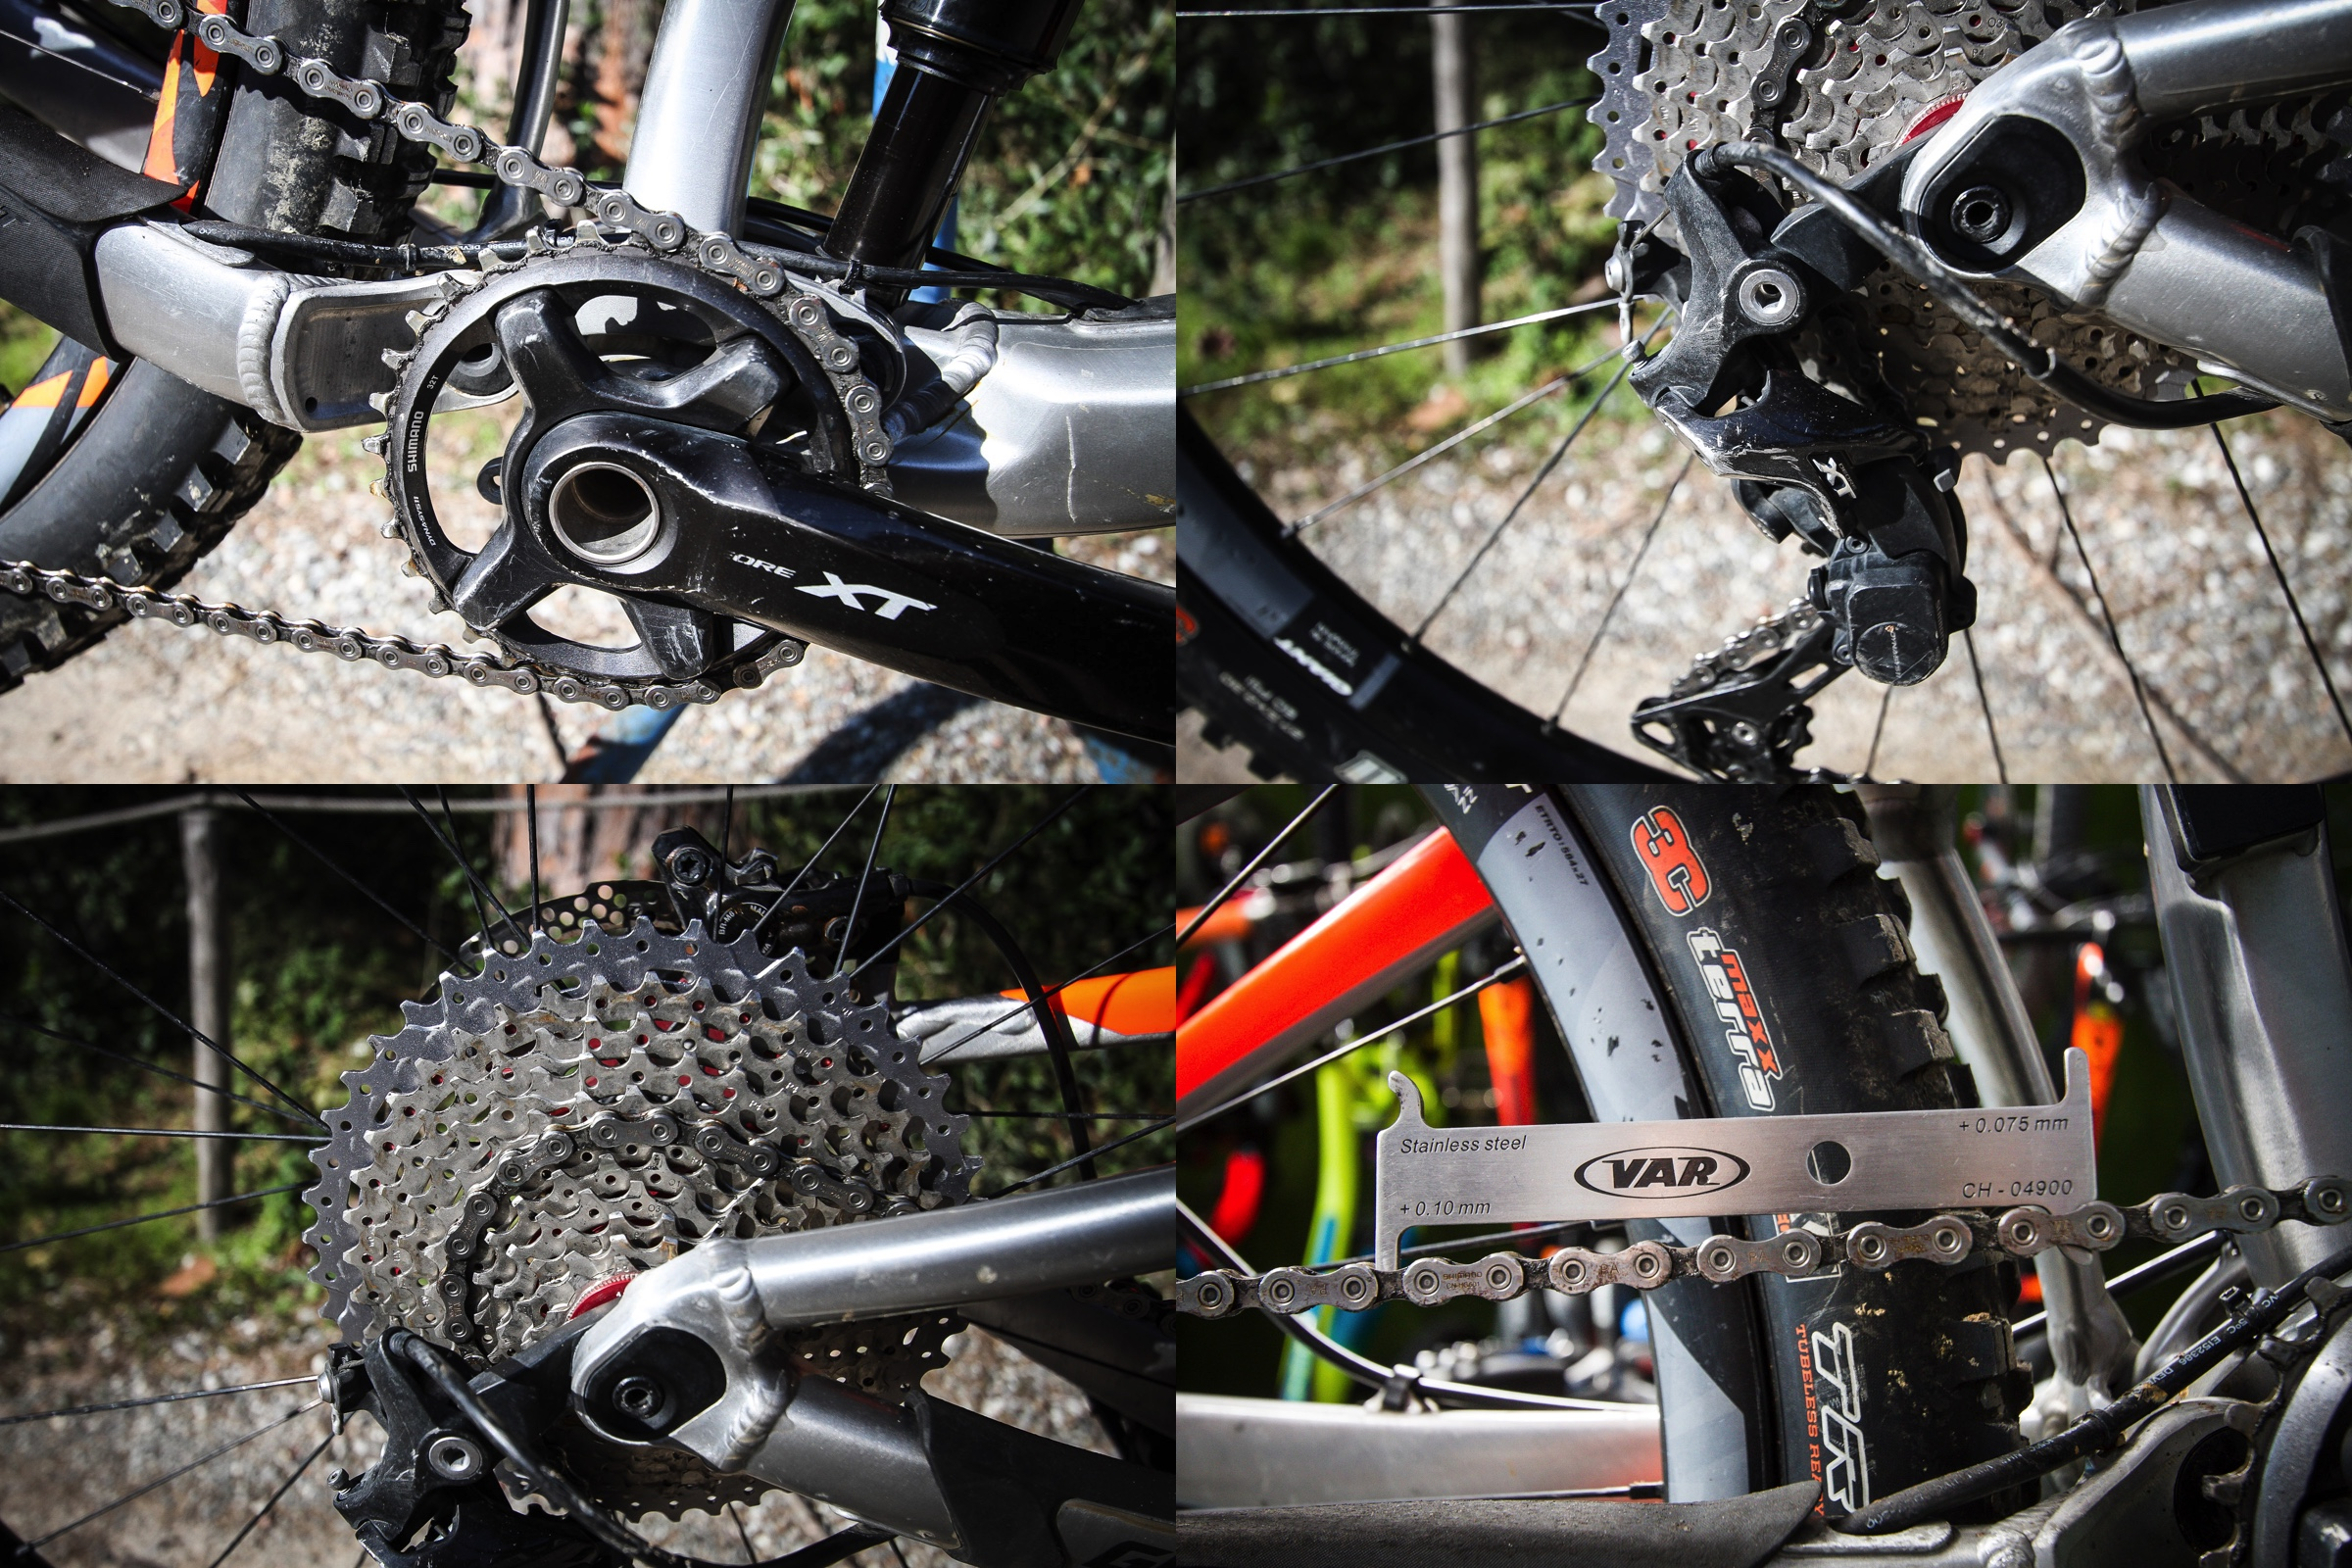 We take a close look at the chain and sprockets, all here are in good working order, our chain tool also shows us that the chain is still in optimum condition.